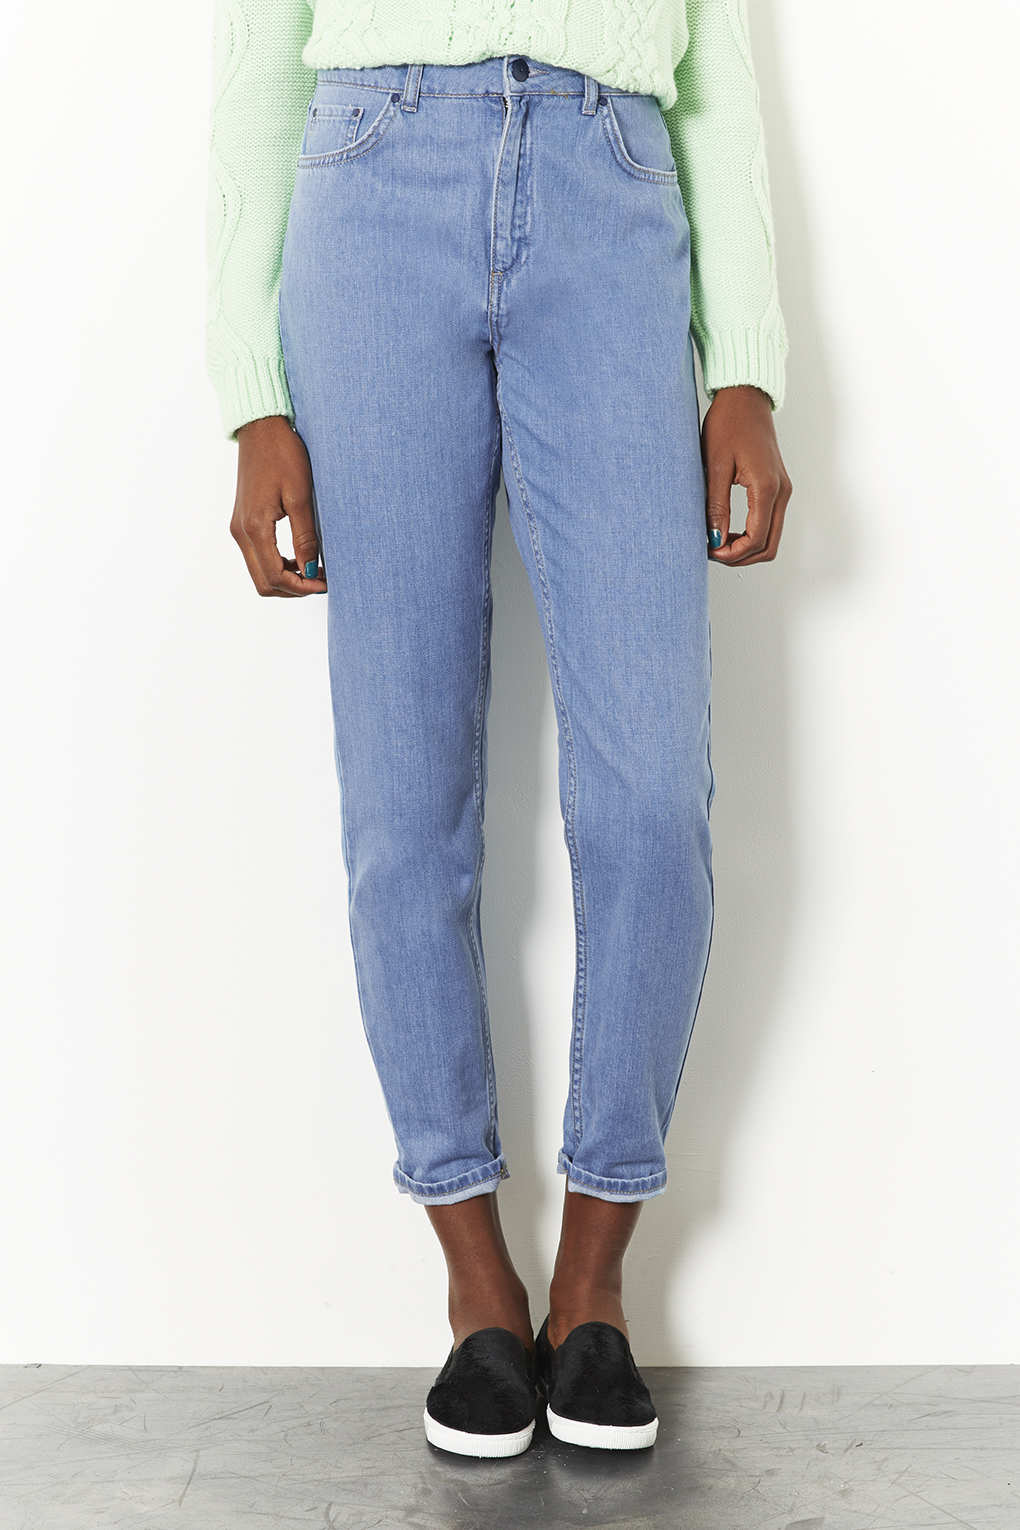 Topshop Bleach High Waisted Mom Jeans in Blue | Lyst